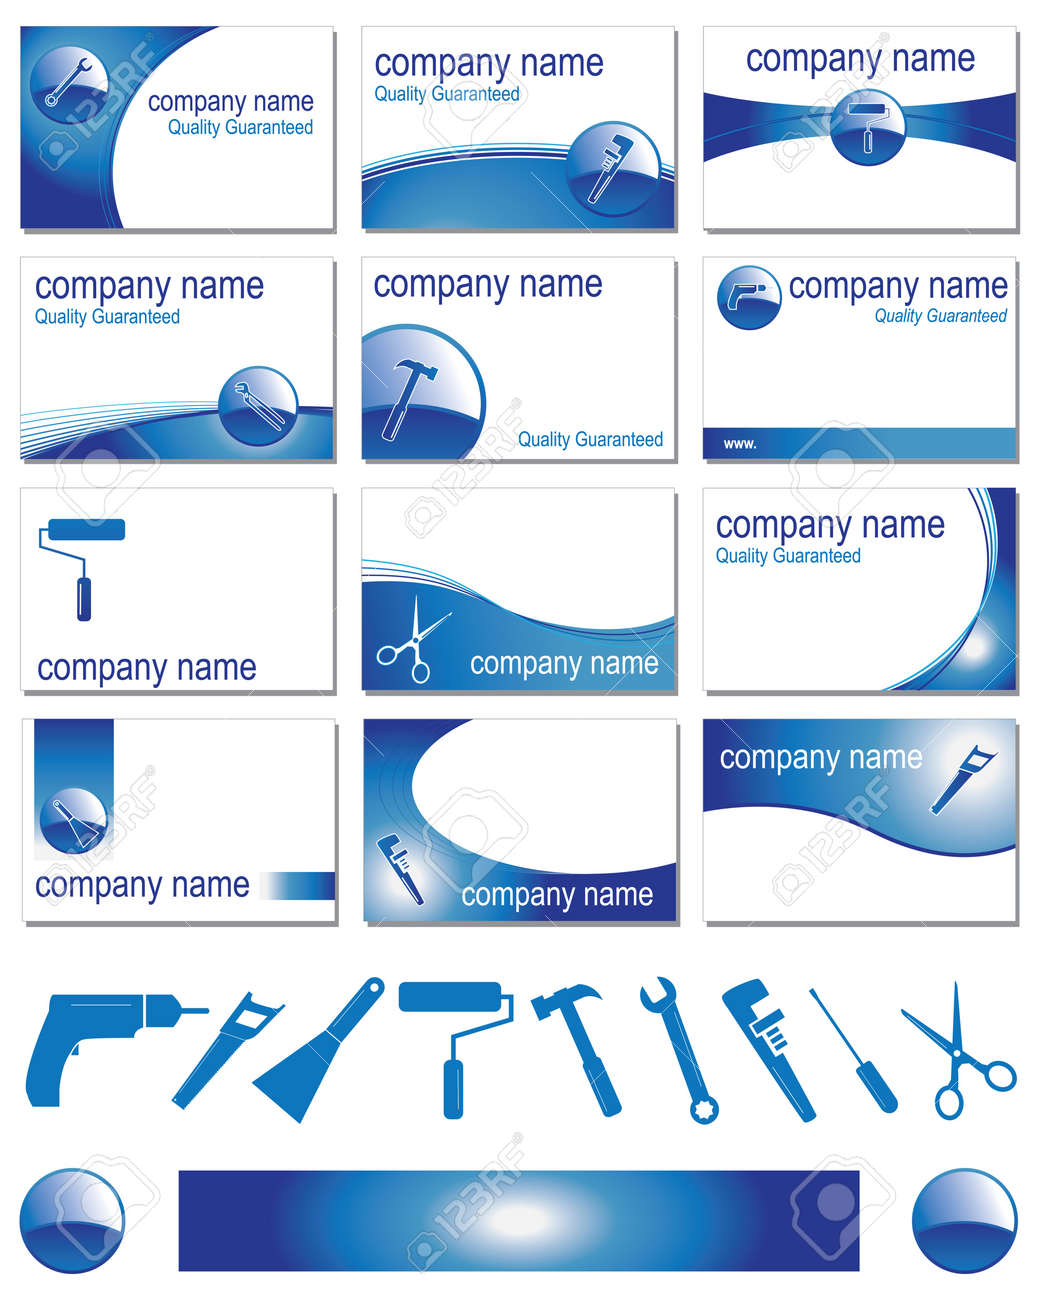 Twelve business card designs for different trades royalty free twelve business card designs for different trades stock vector 12204711 colourmoves